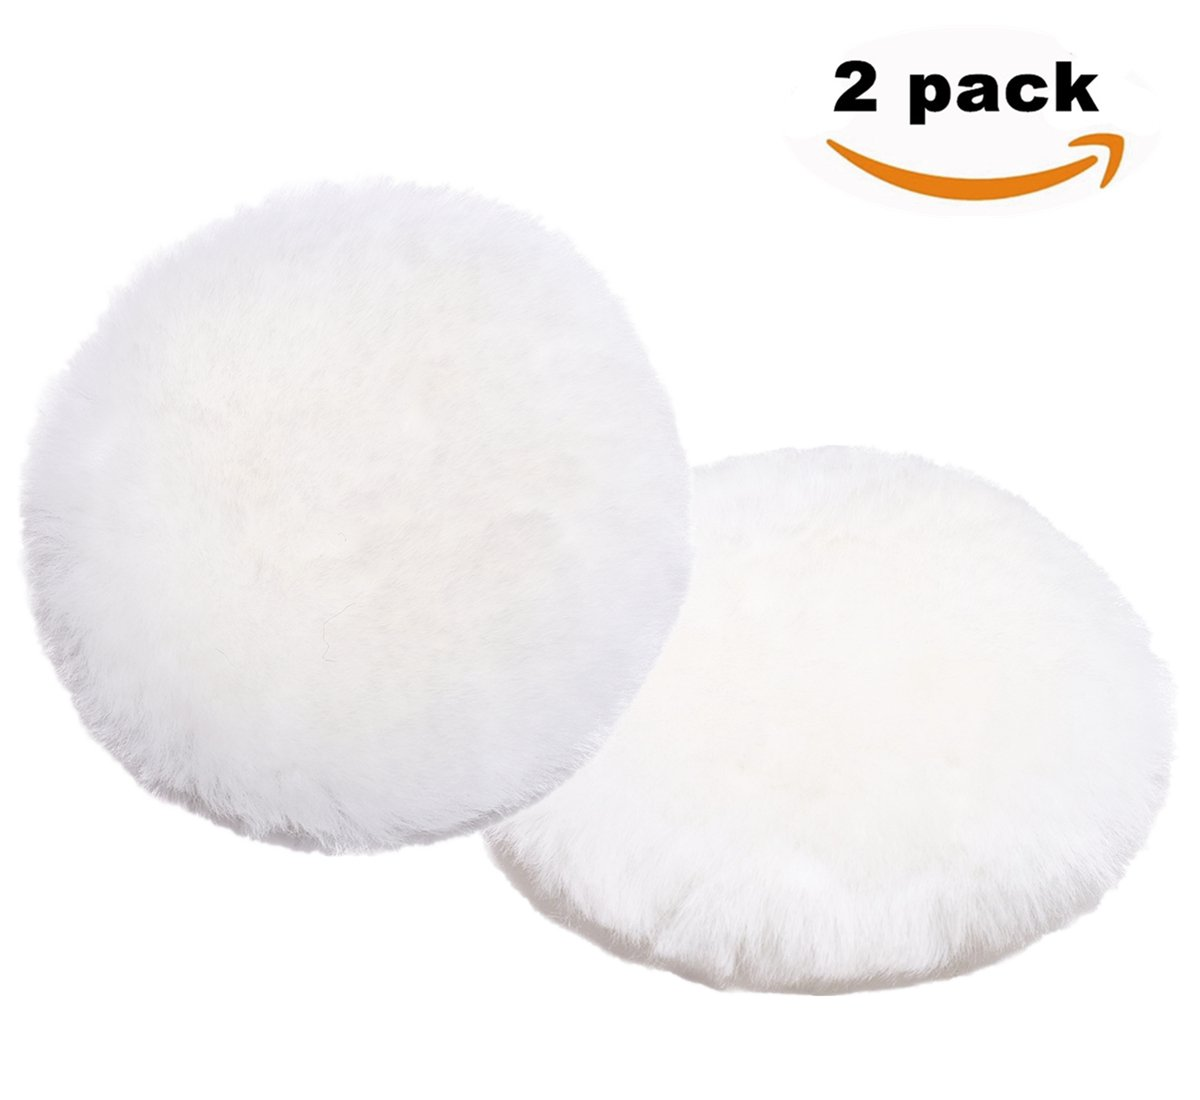 Finishing Wool Pad Size 7'' Okayda Natural Lambs Wool Polishing Cutting Pad With Hook And Loop for Car Polisher White 2 pads